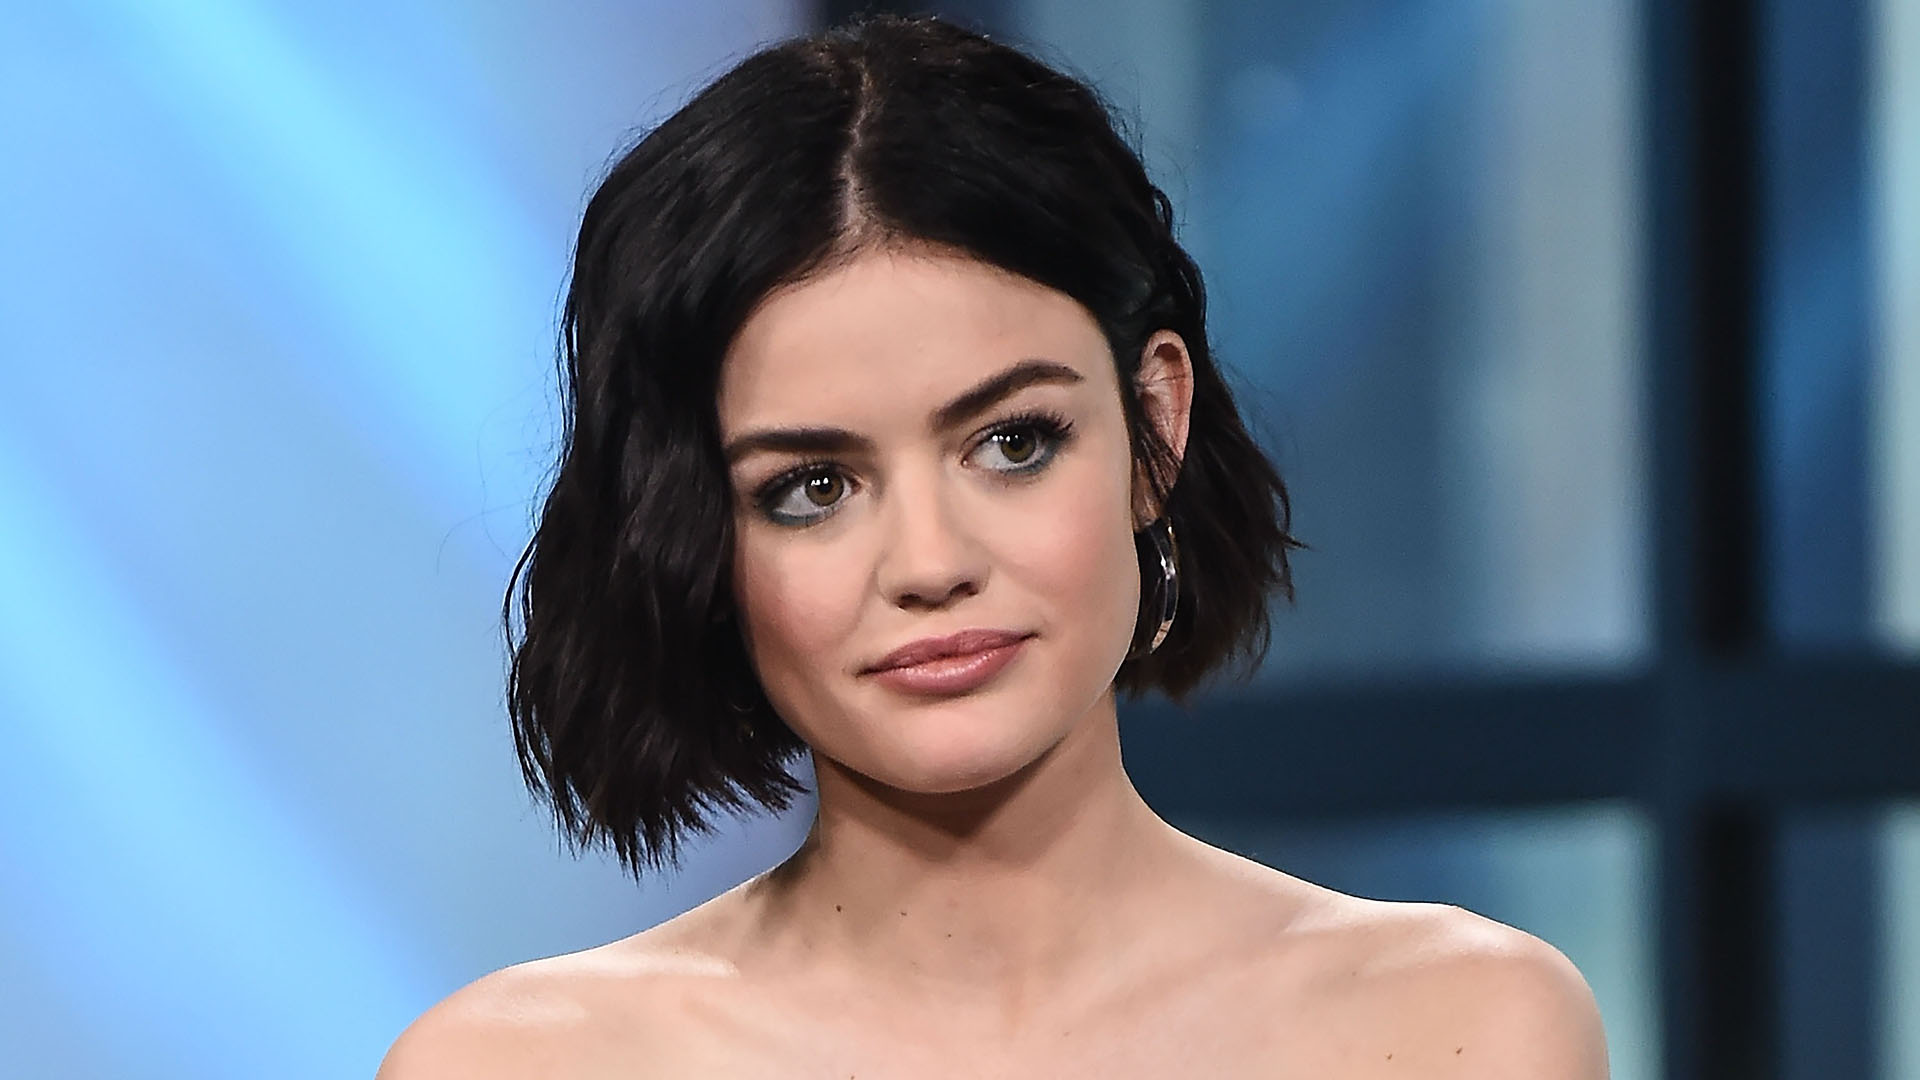 Lucy Hale Opens Up About #MeToo Movement After Suggesting She Was Sexually Assaulted